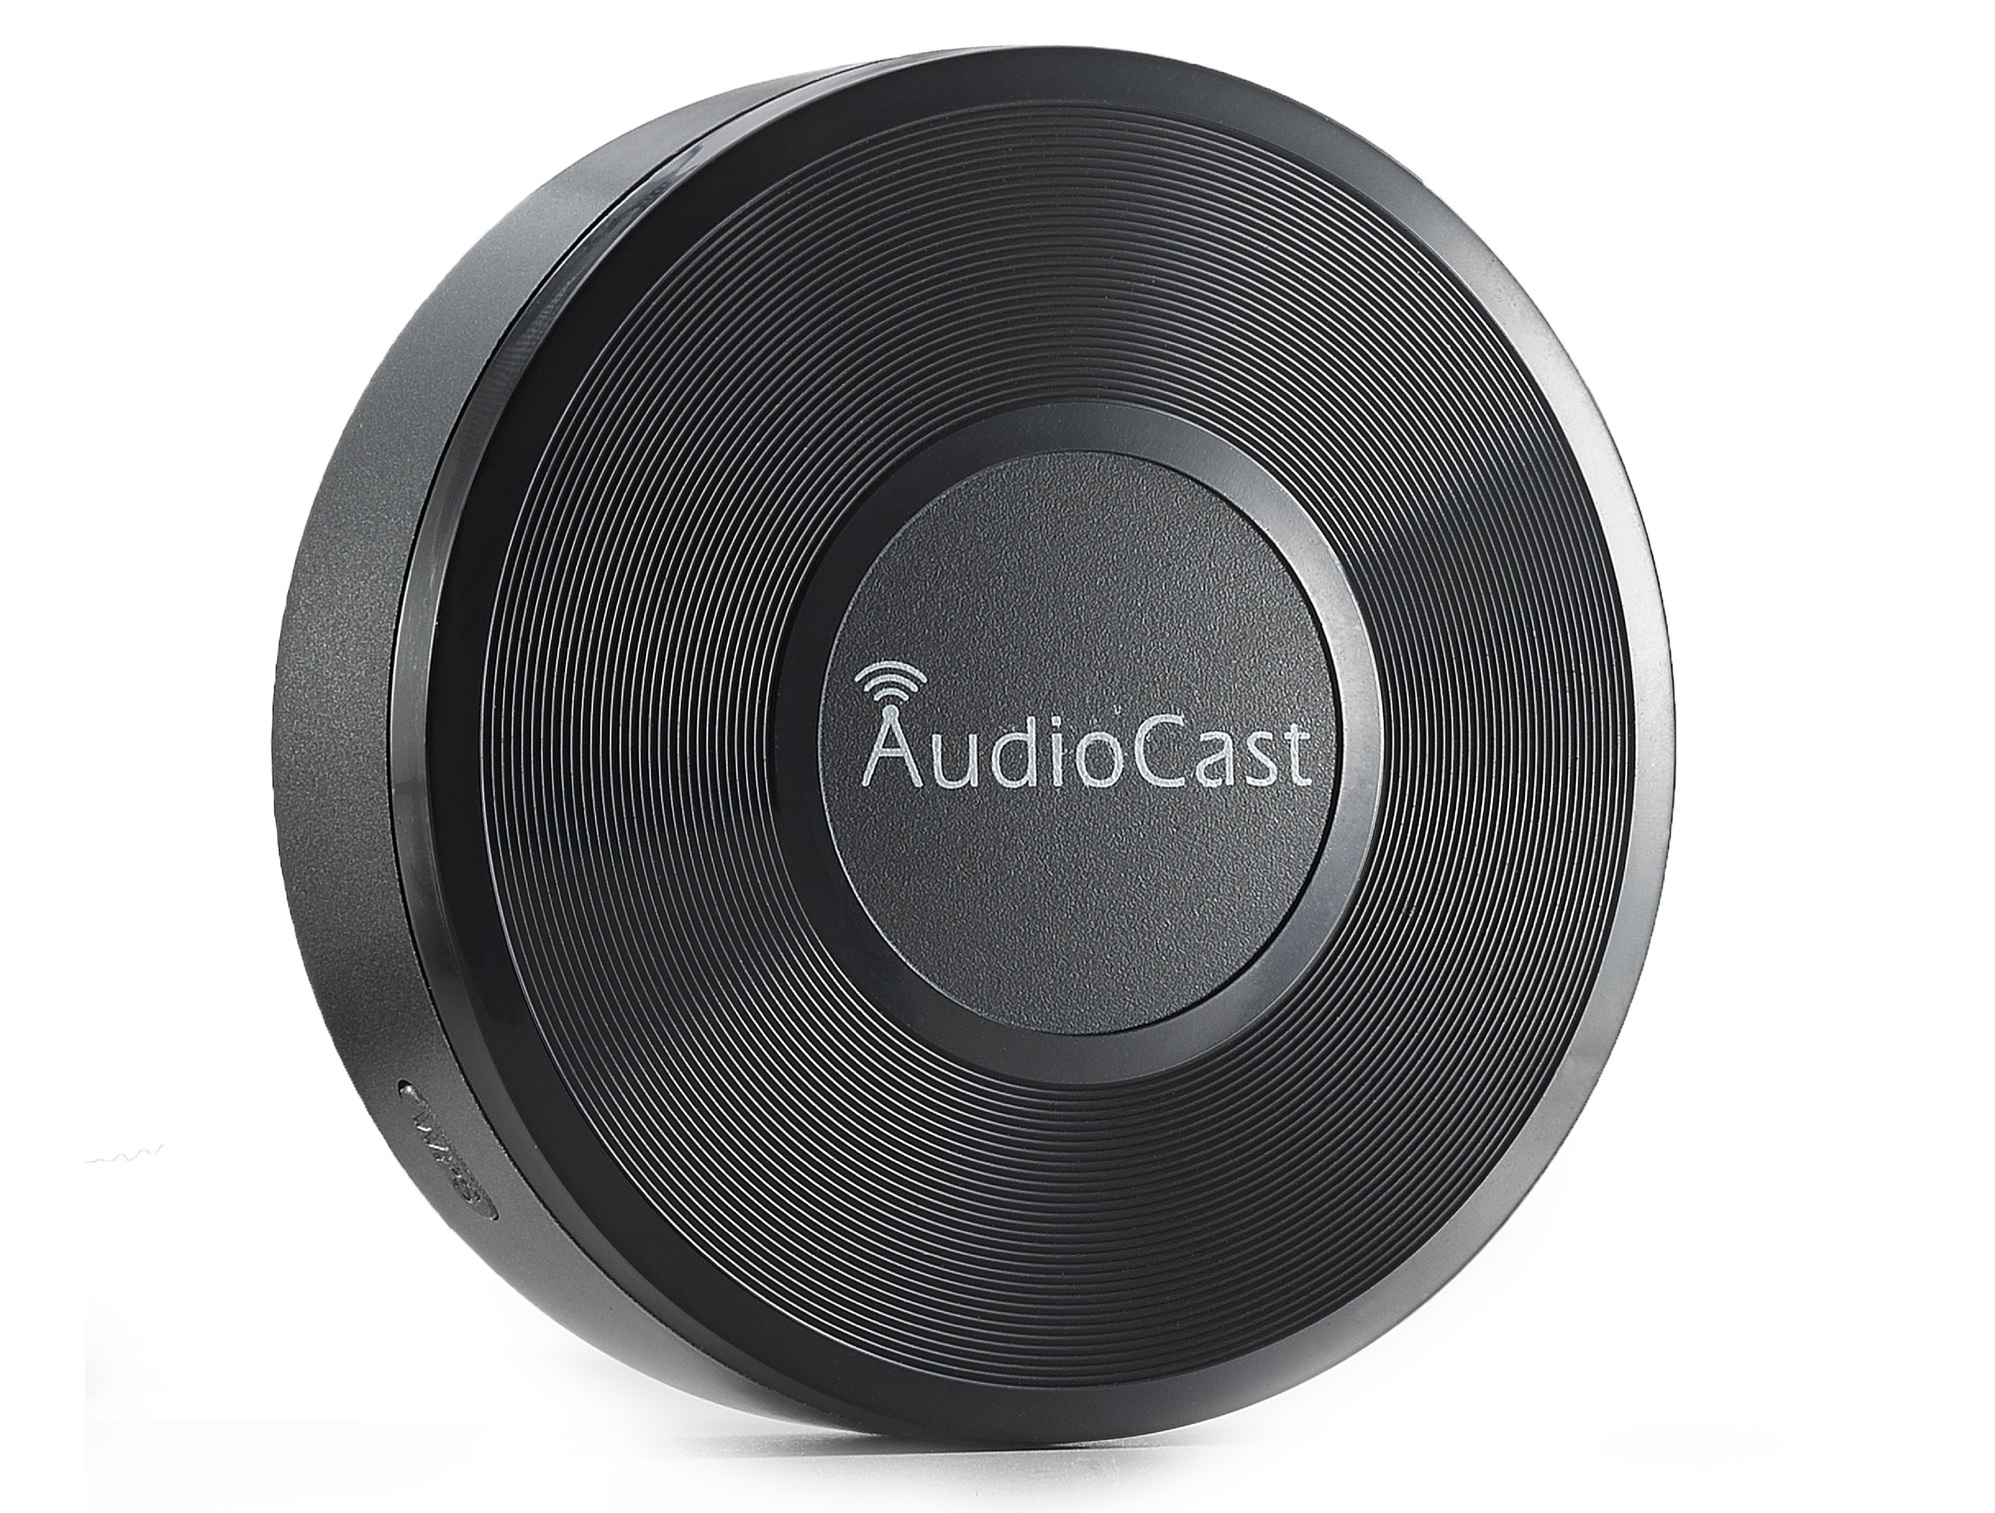 wifi music streamer / audiocast for multi-room streaming system